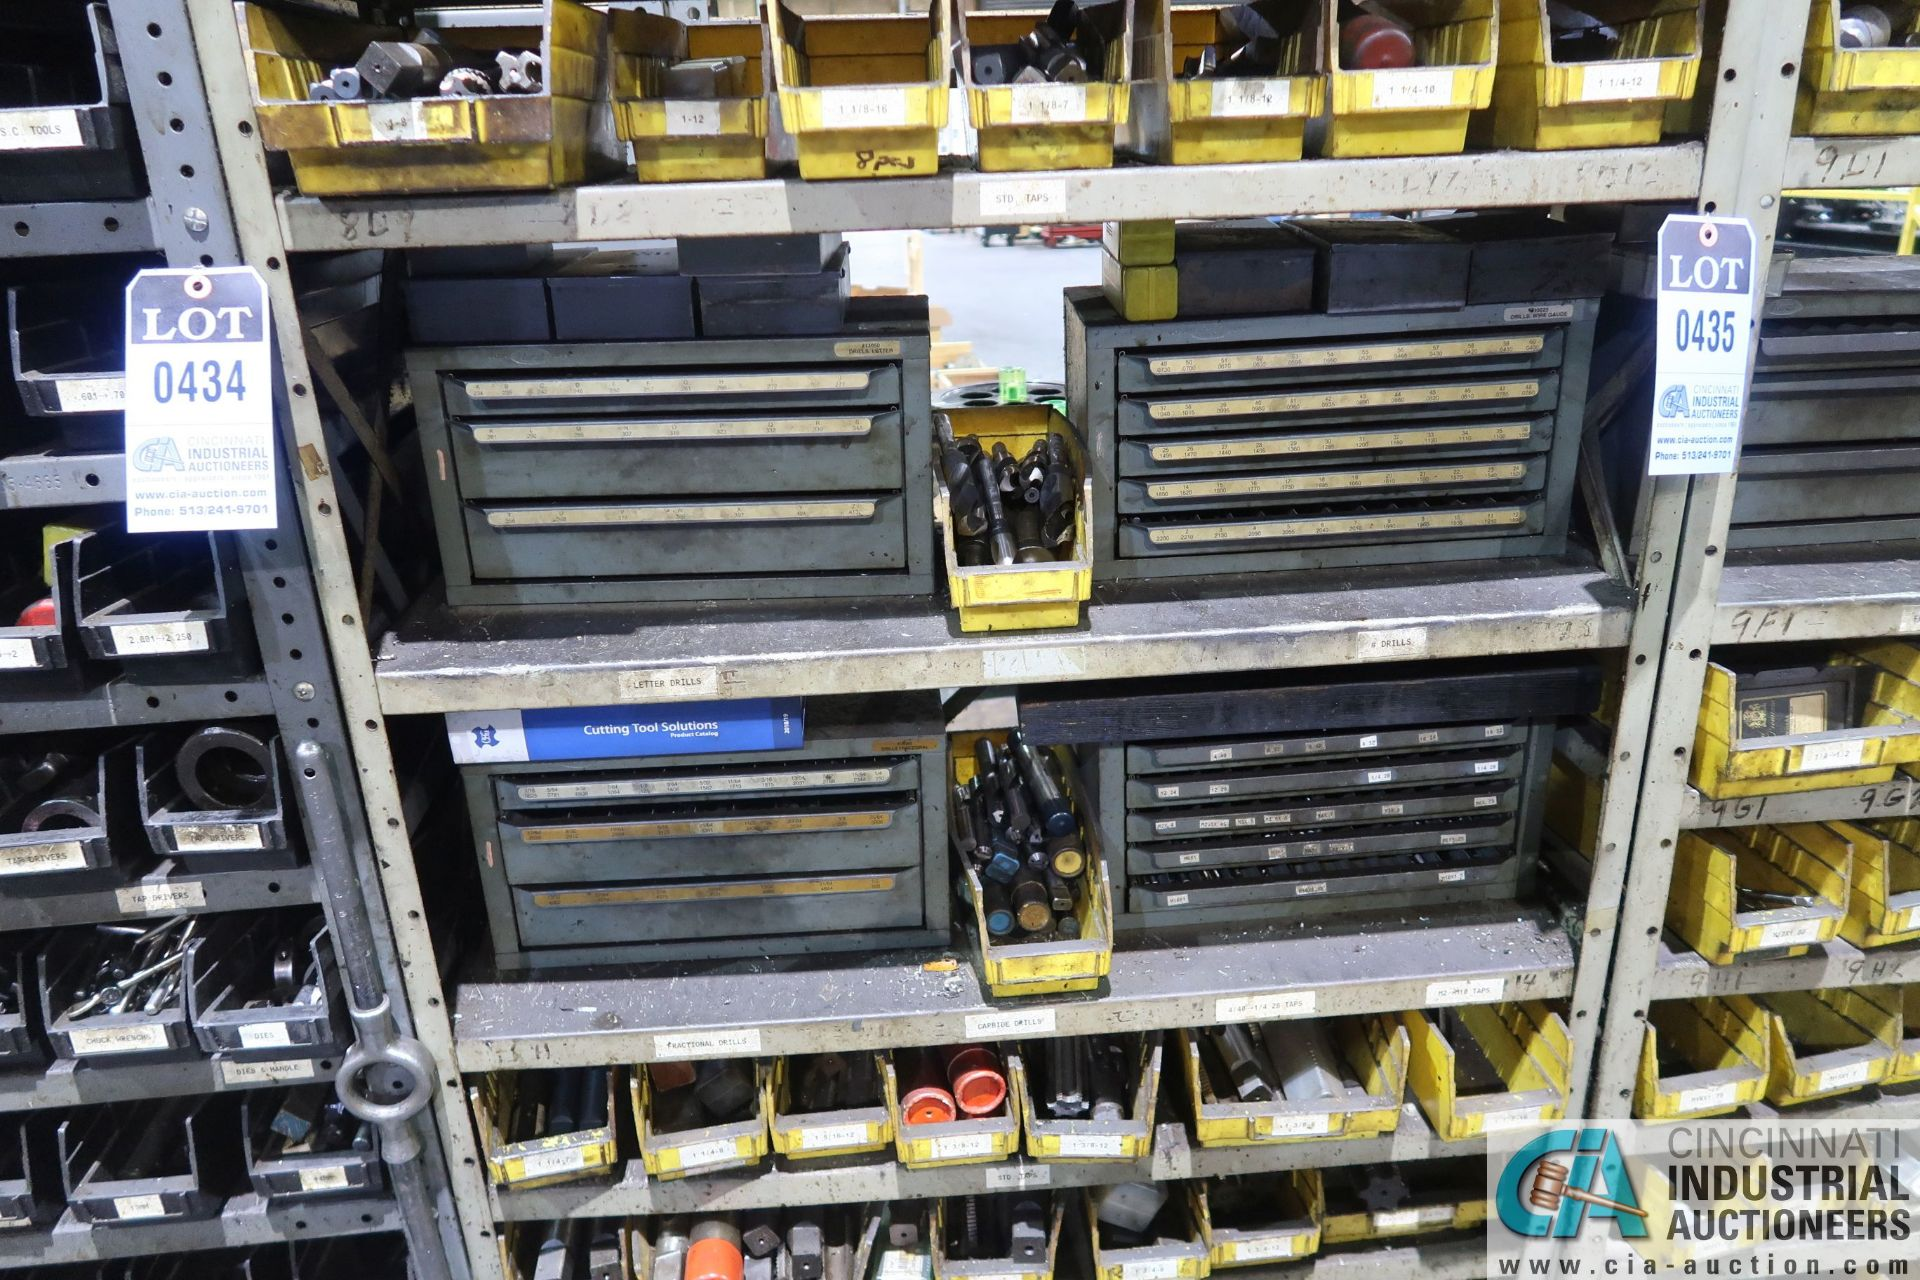 (LOT) HUGE ASSORTMENT TAPS AND DRILL INDEX CABINETS WITH SHELVING - Image 3 of 4